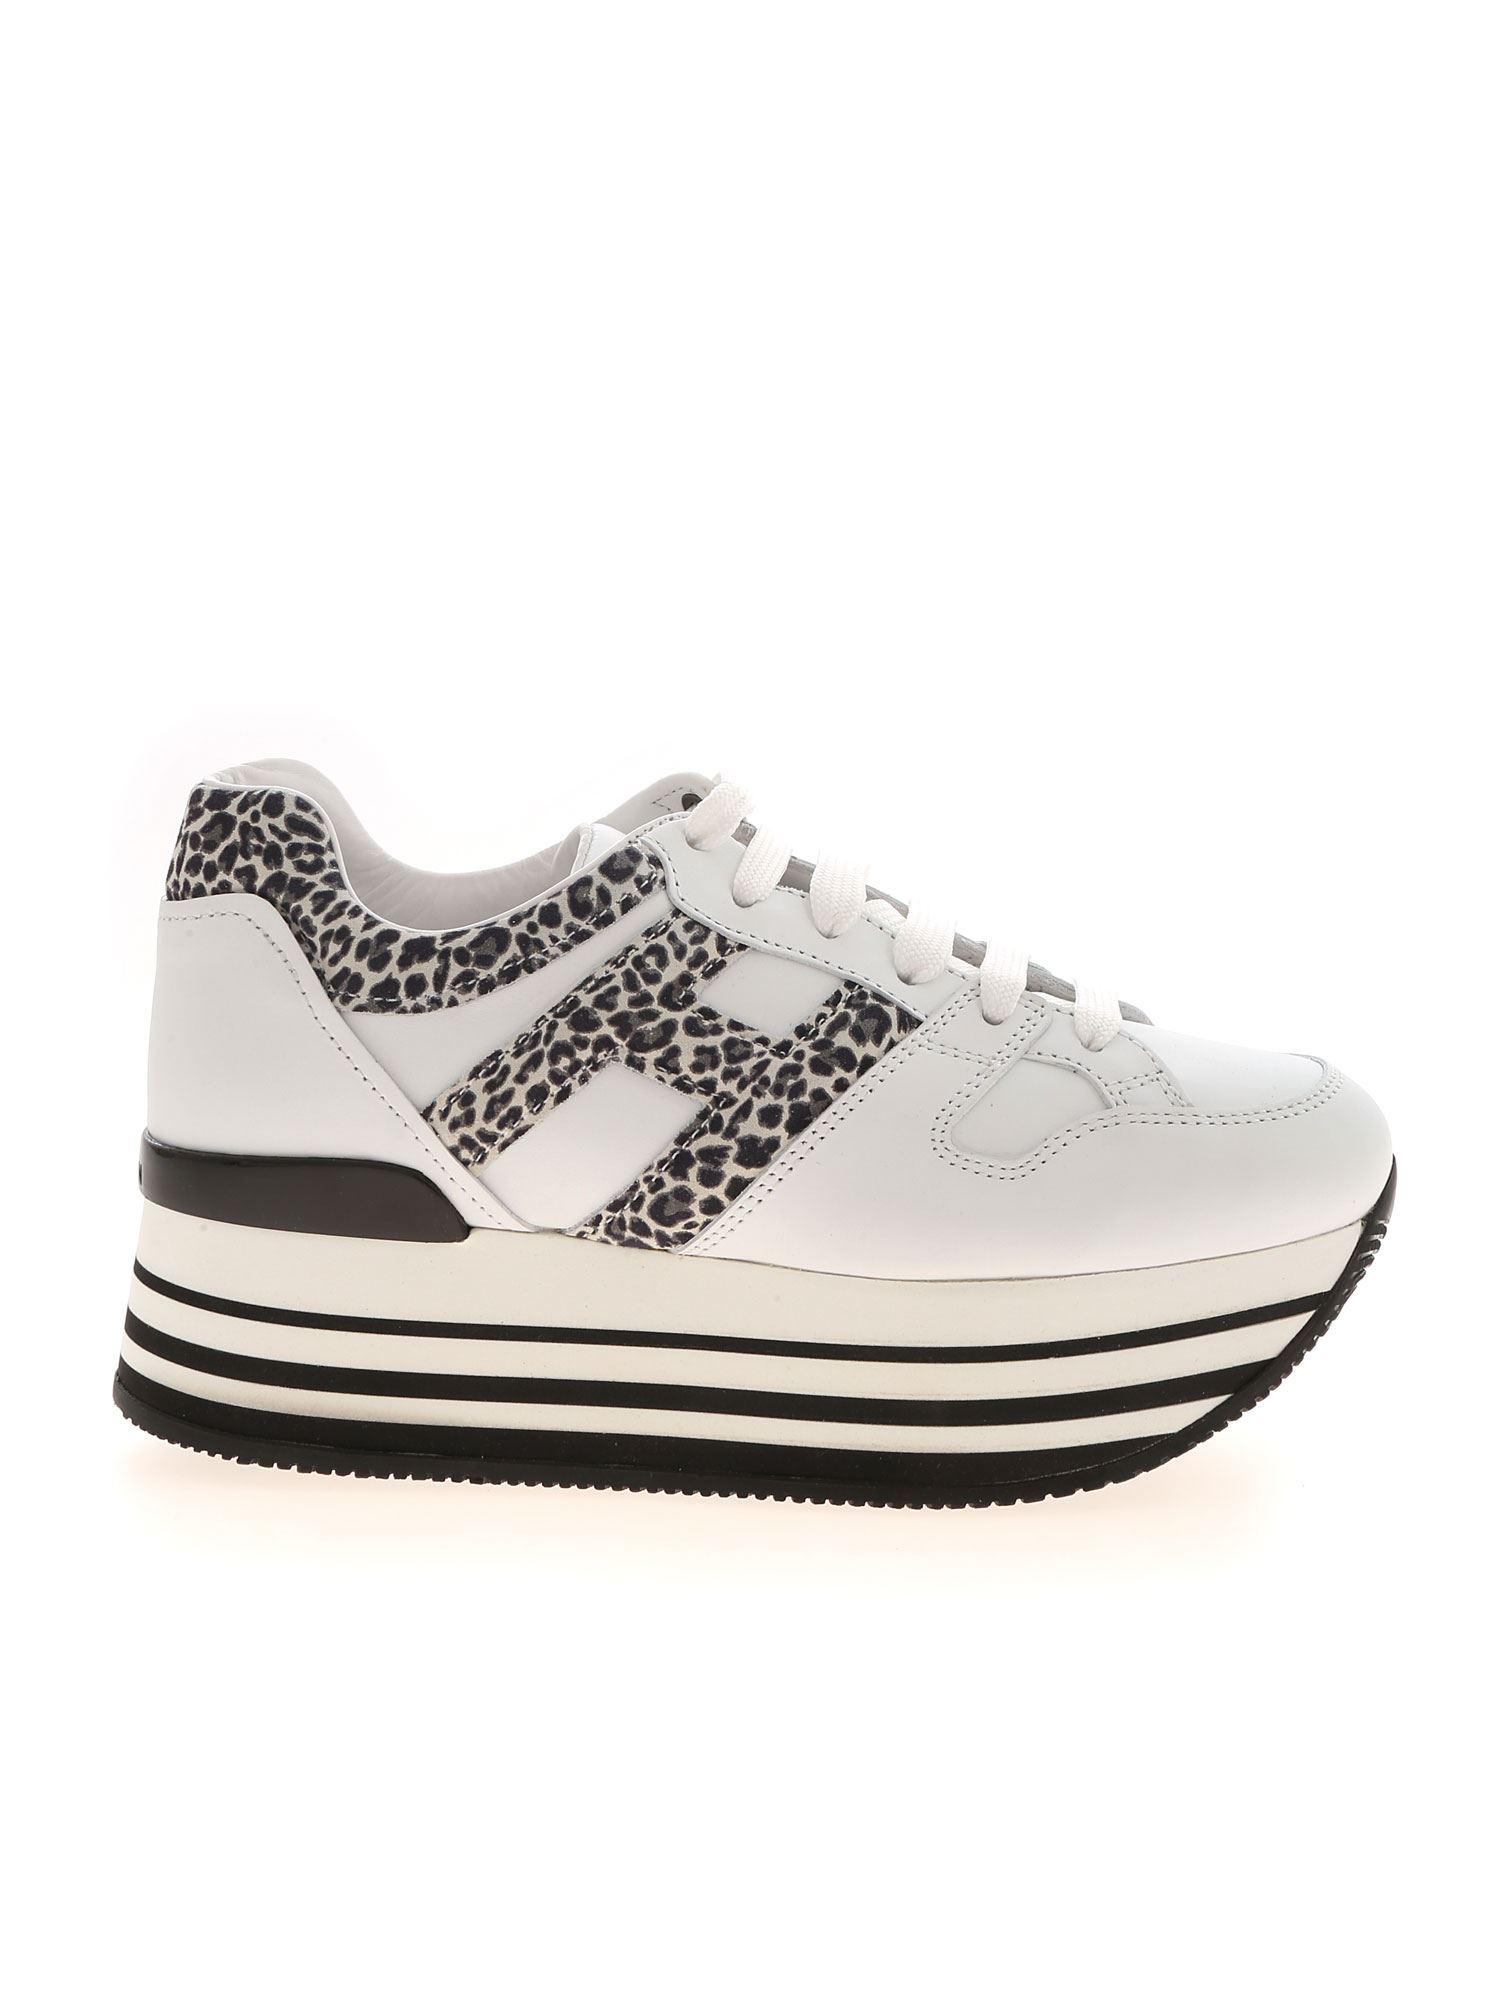 Hogan Leather Maxi Platform H283 Sneakers in Green,White (White ...